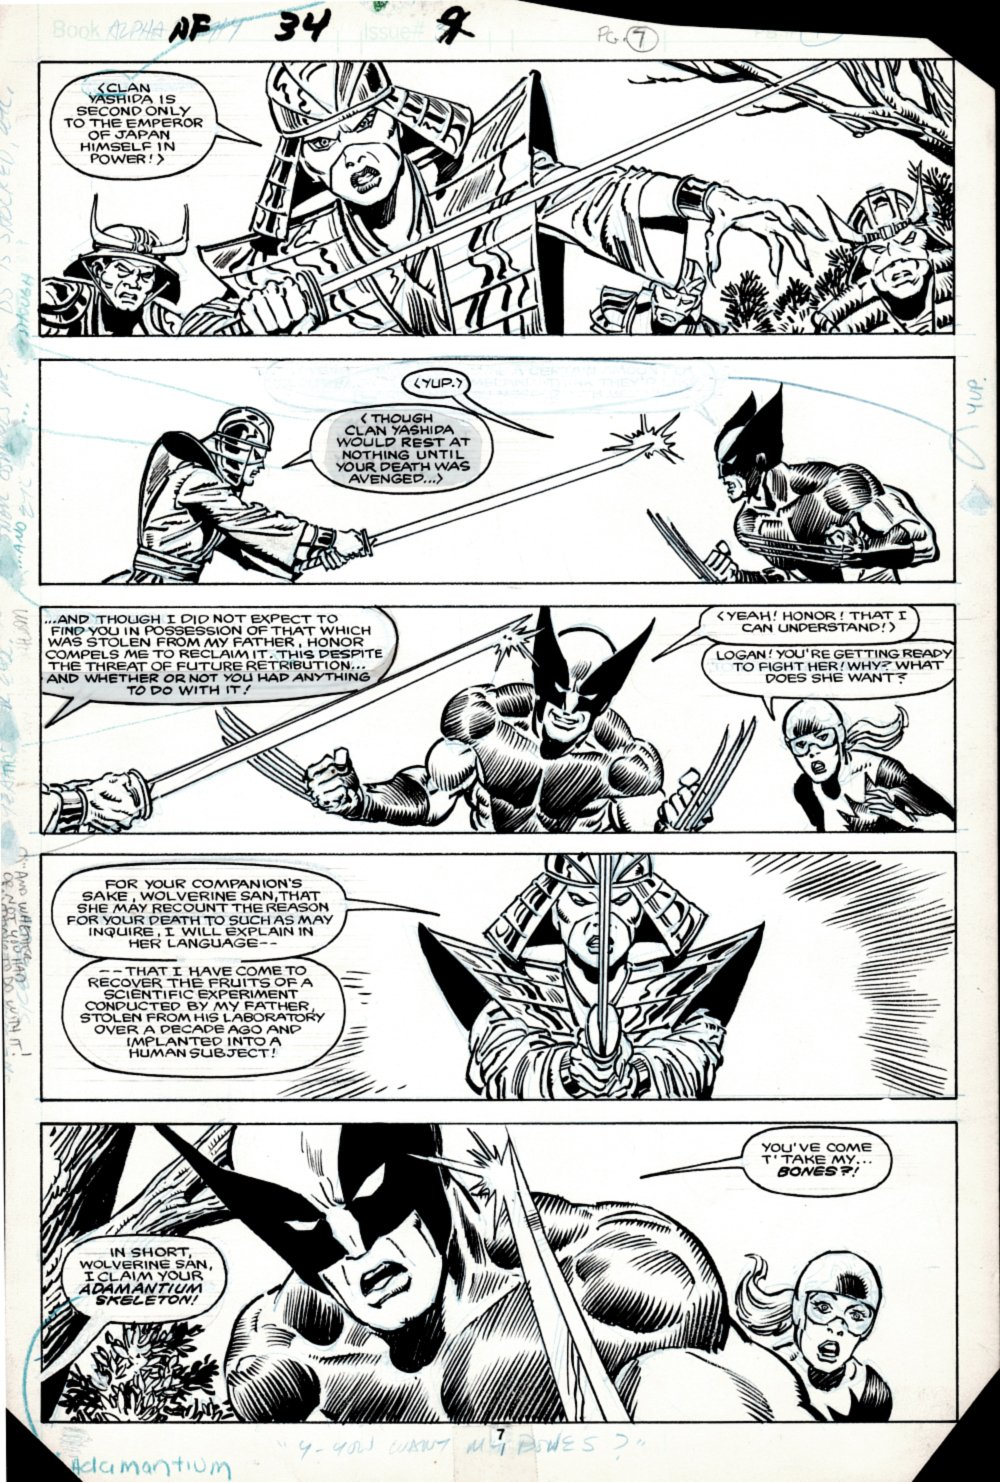 Alpha Flight #34 p 7 (SOLD LIVE ON 'DUELING DEALERS OF COMIC ART' EPISODE #20 PODCAST ON 6-2-2021 (RE-WATCH THIS FUNNY ART SELLING SHOW HERE)